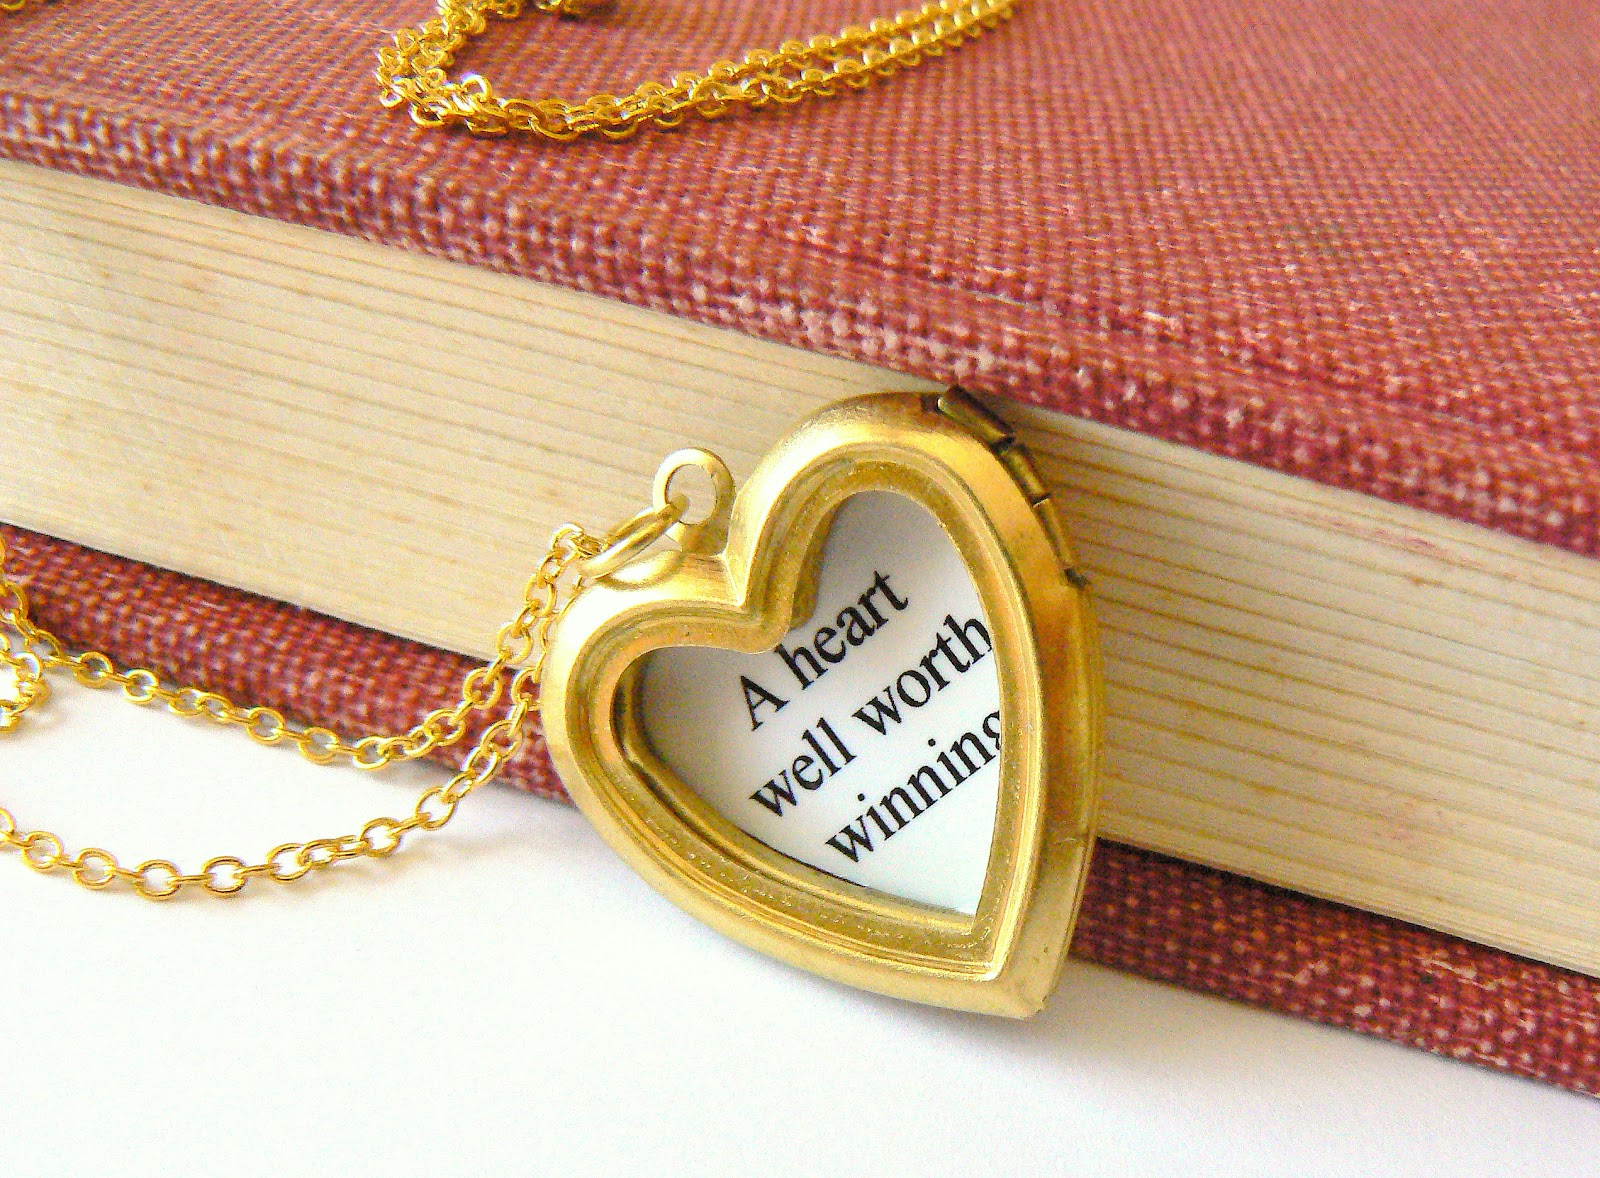 necklace lockets background images wallpaper open locket heart hd objects